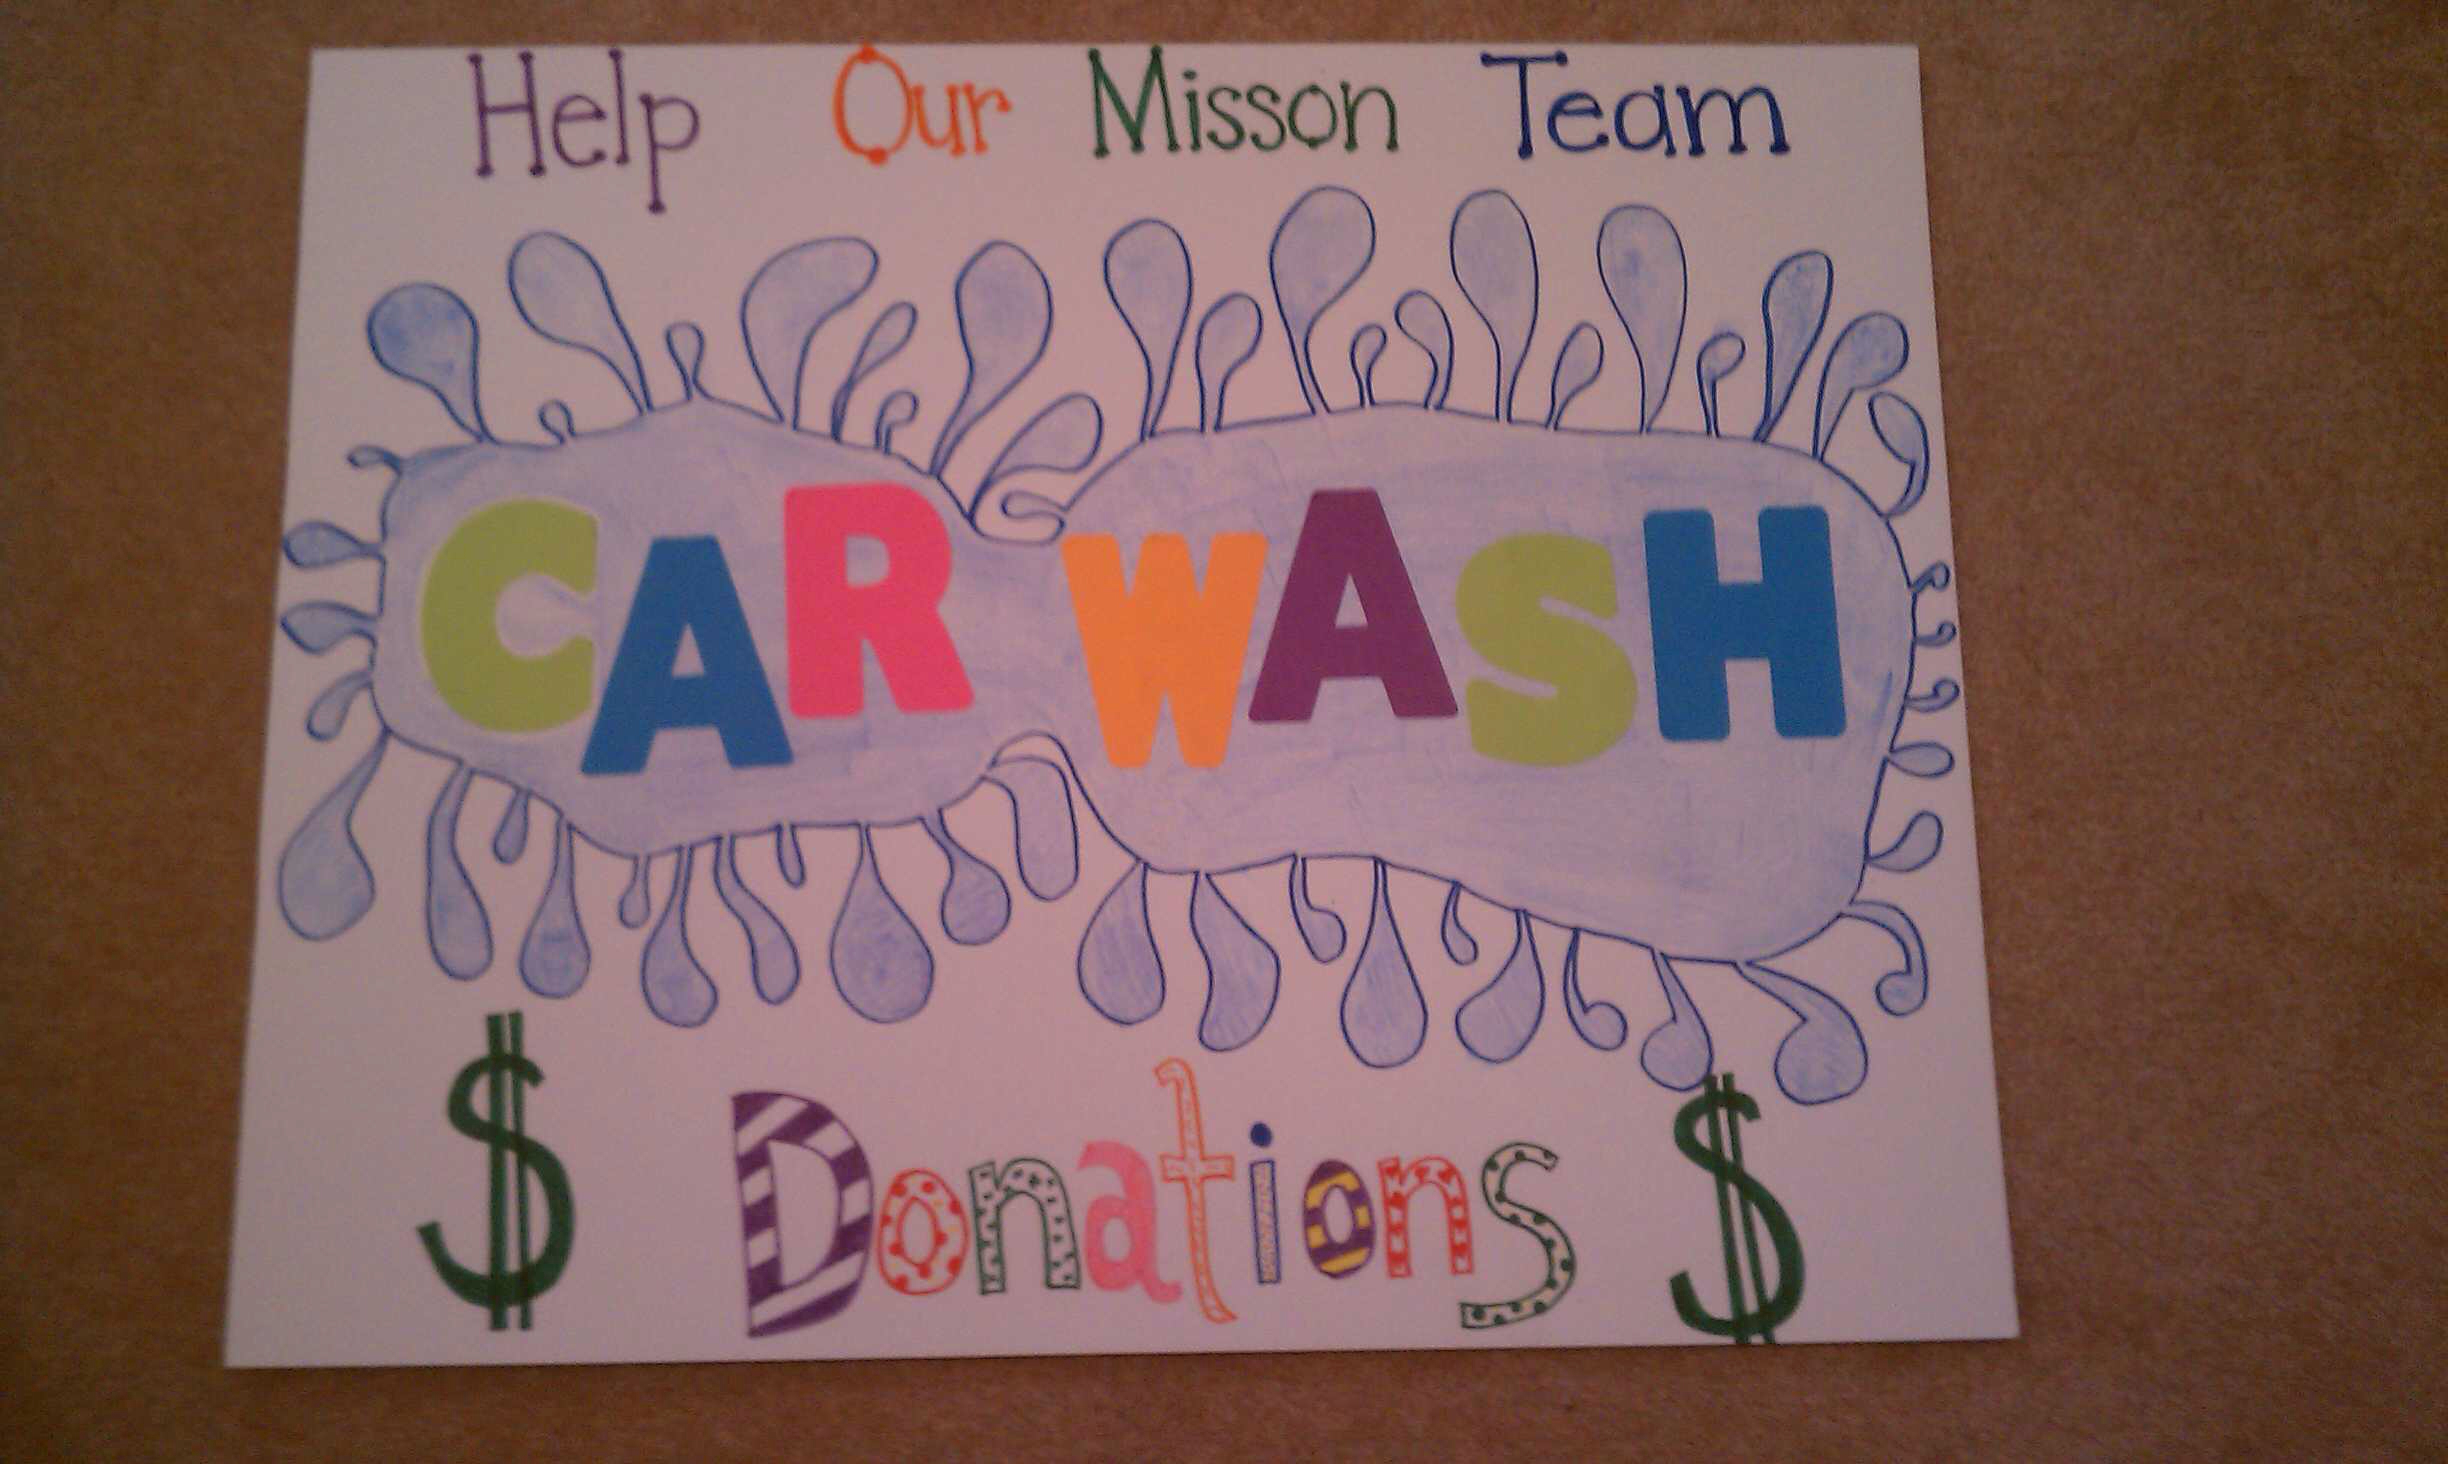 happy birthday poster ideas with pictures ; wash-fundraiser-poster-ideas-homemade-car-posters-pinterest_1567114